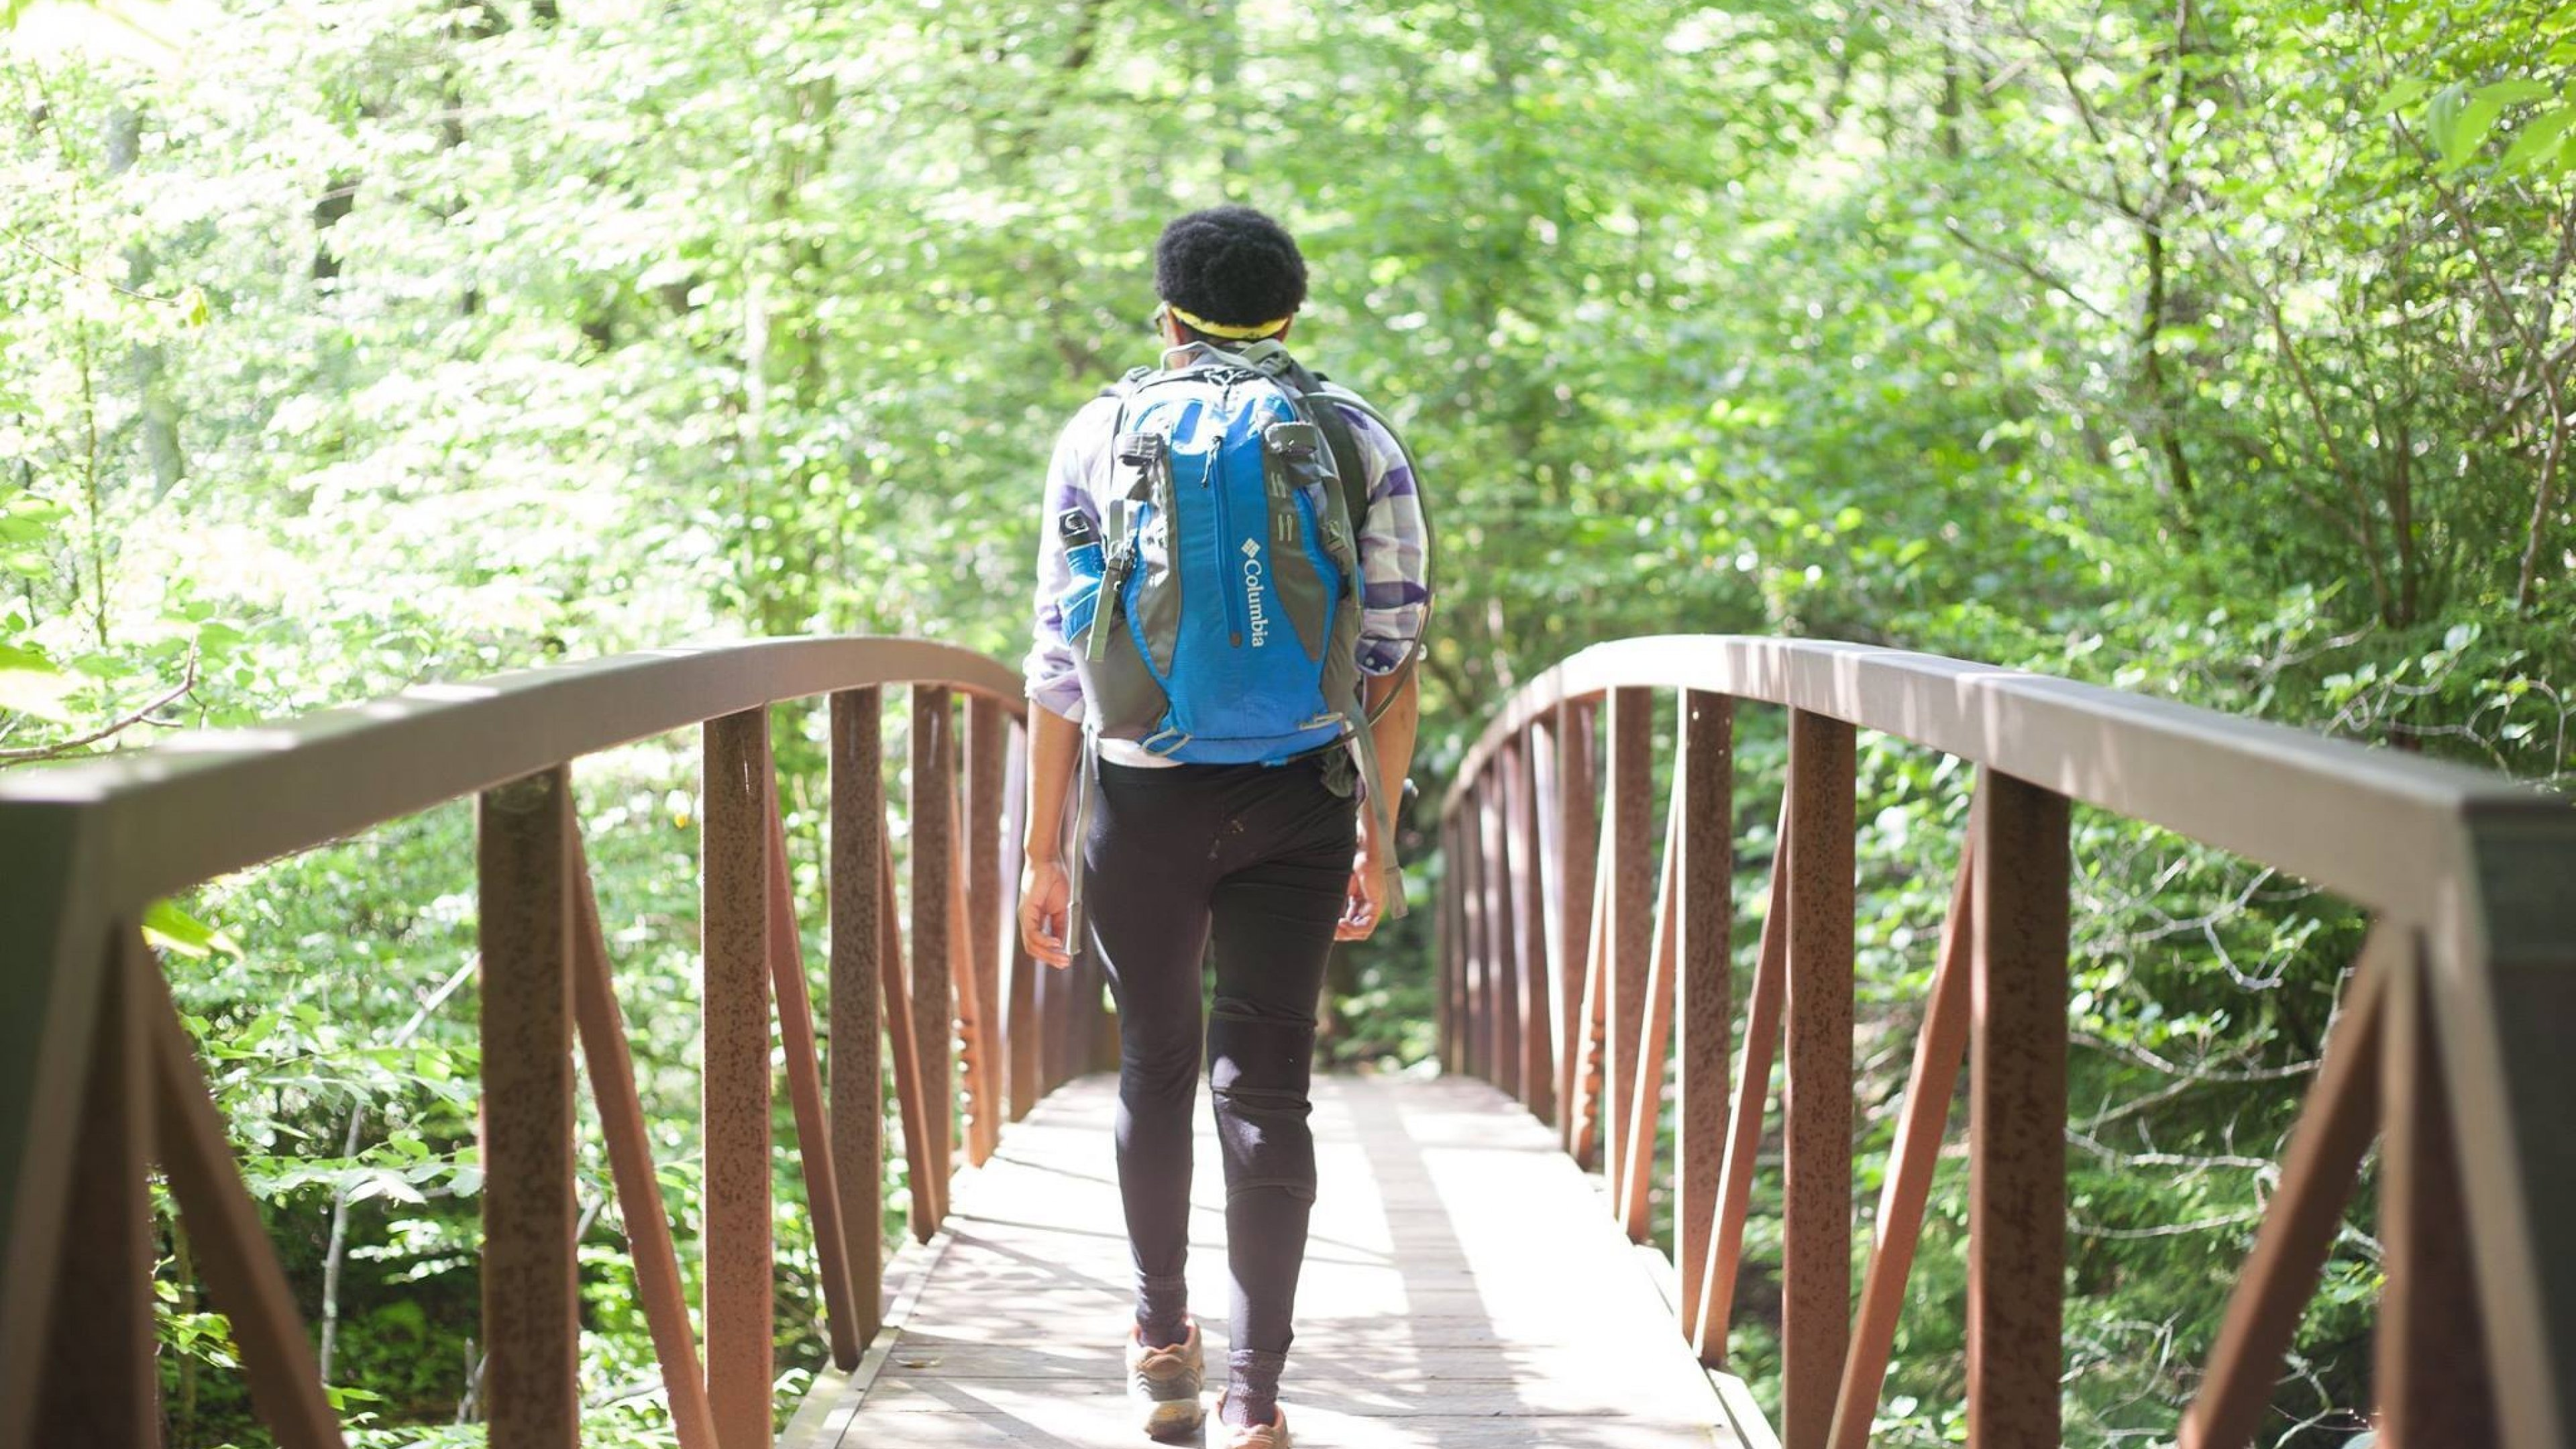 Brittany walks over a wooden bridge among the green of the trees, carrying a Columbia backpack.